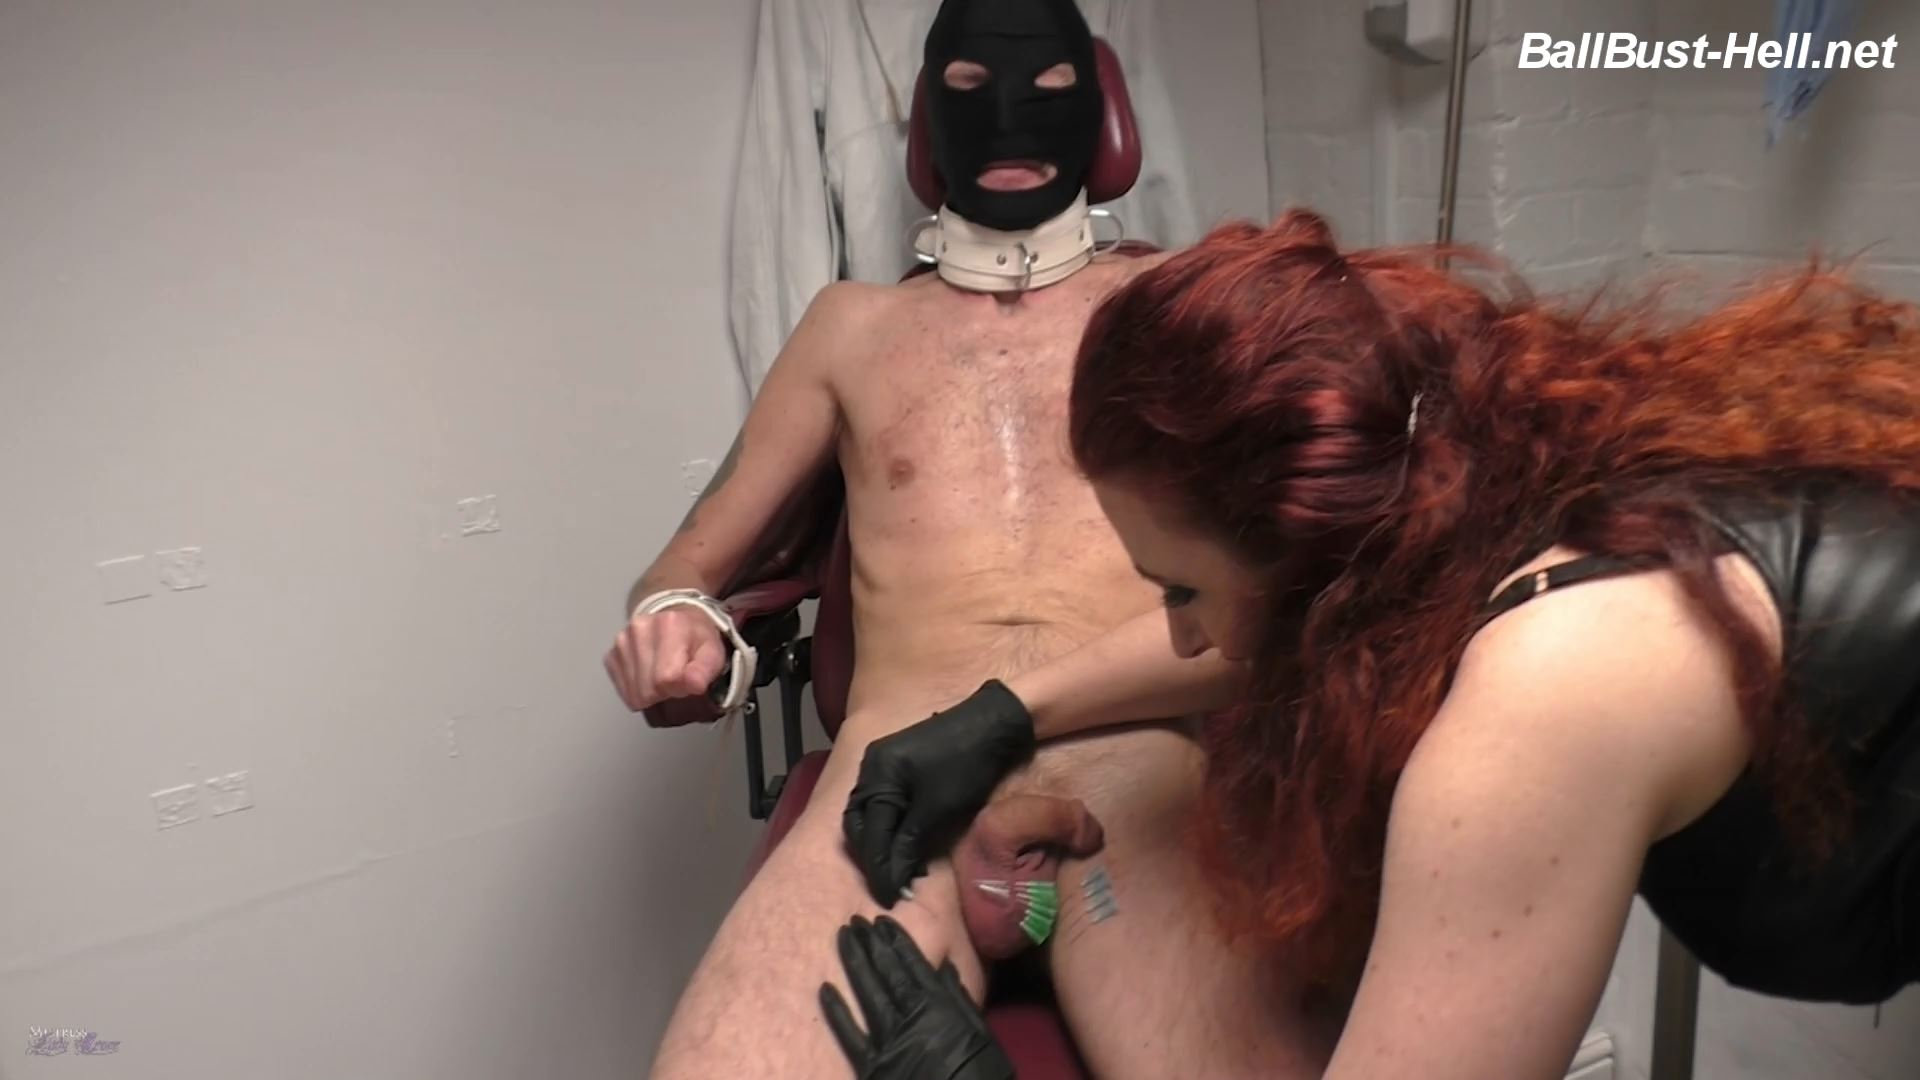 Mistress Lady Renee In Scene: Cock Head Needling - MistressLadyRenee - FULL HD/1080p/MP4